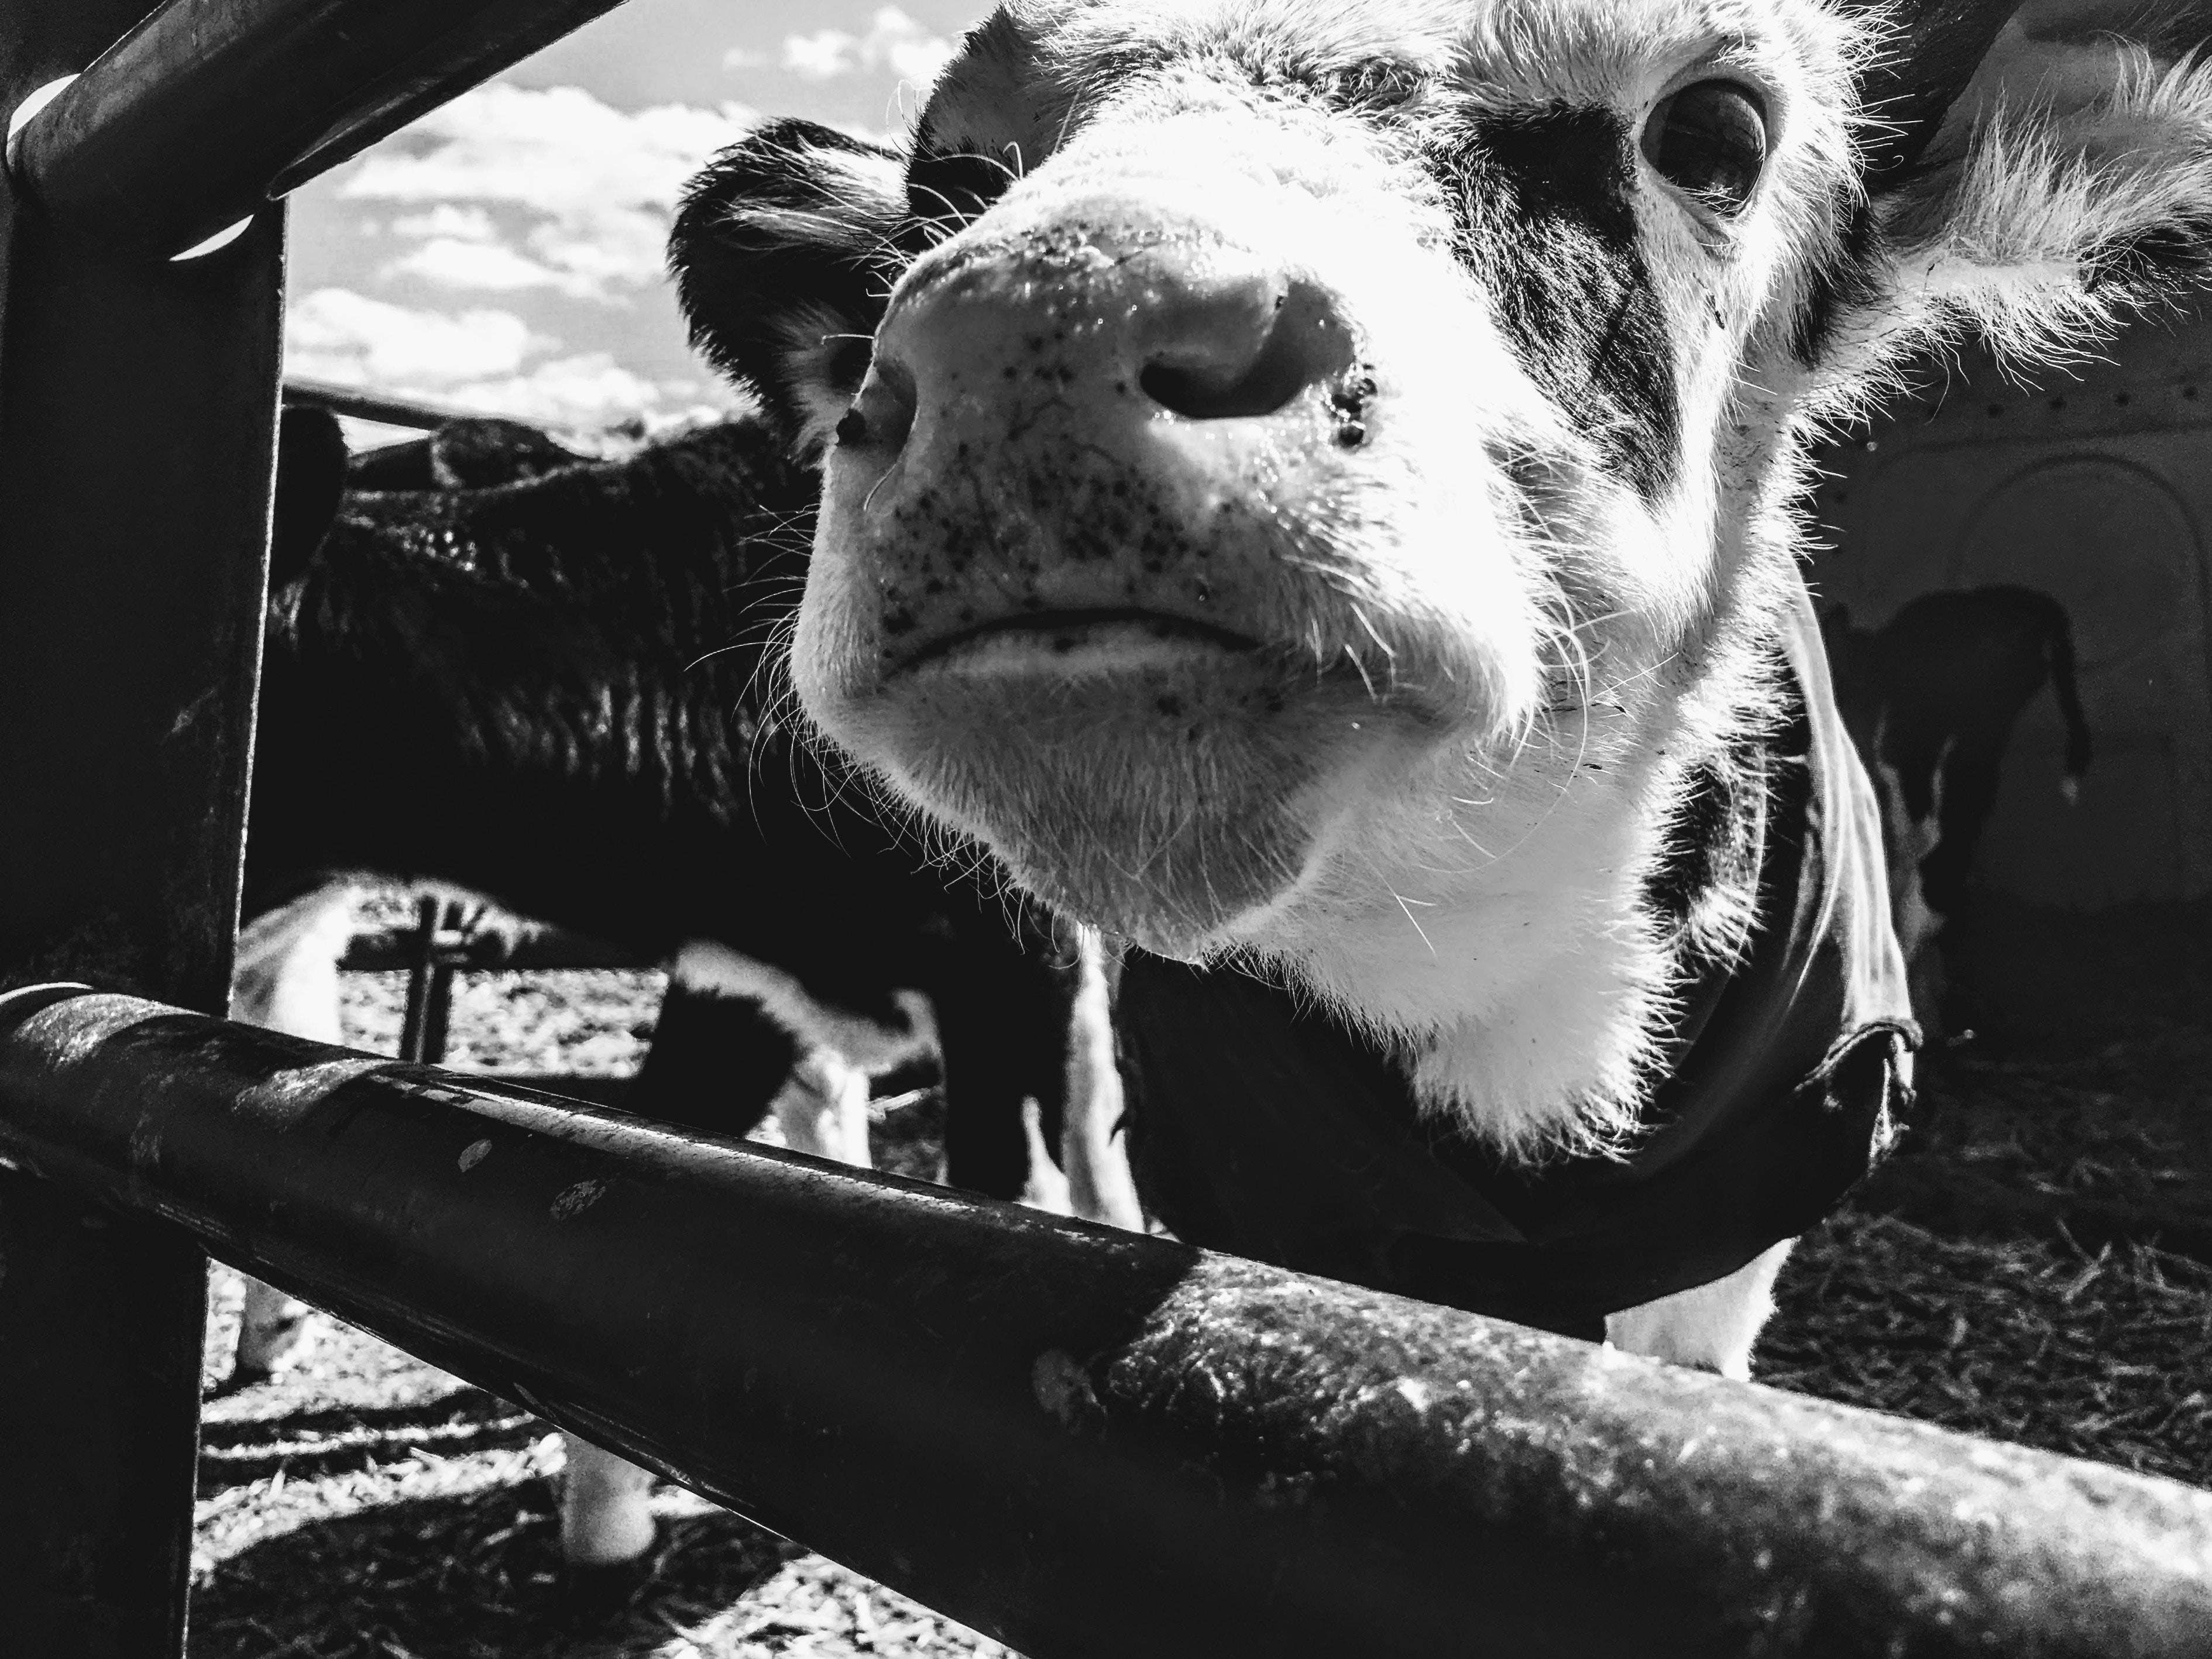 animal-black-and-white-cattle-1001175